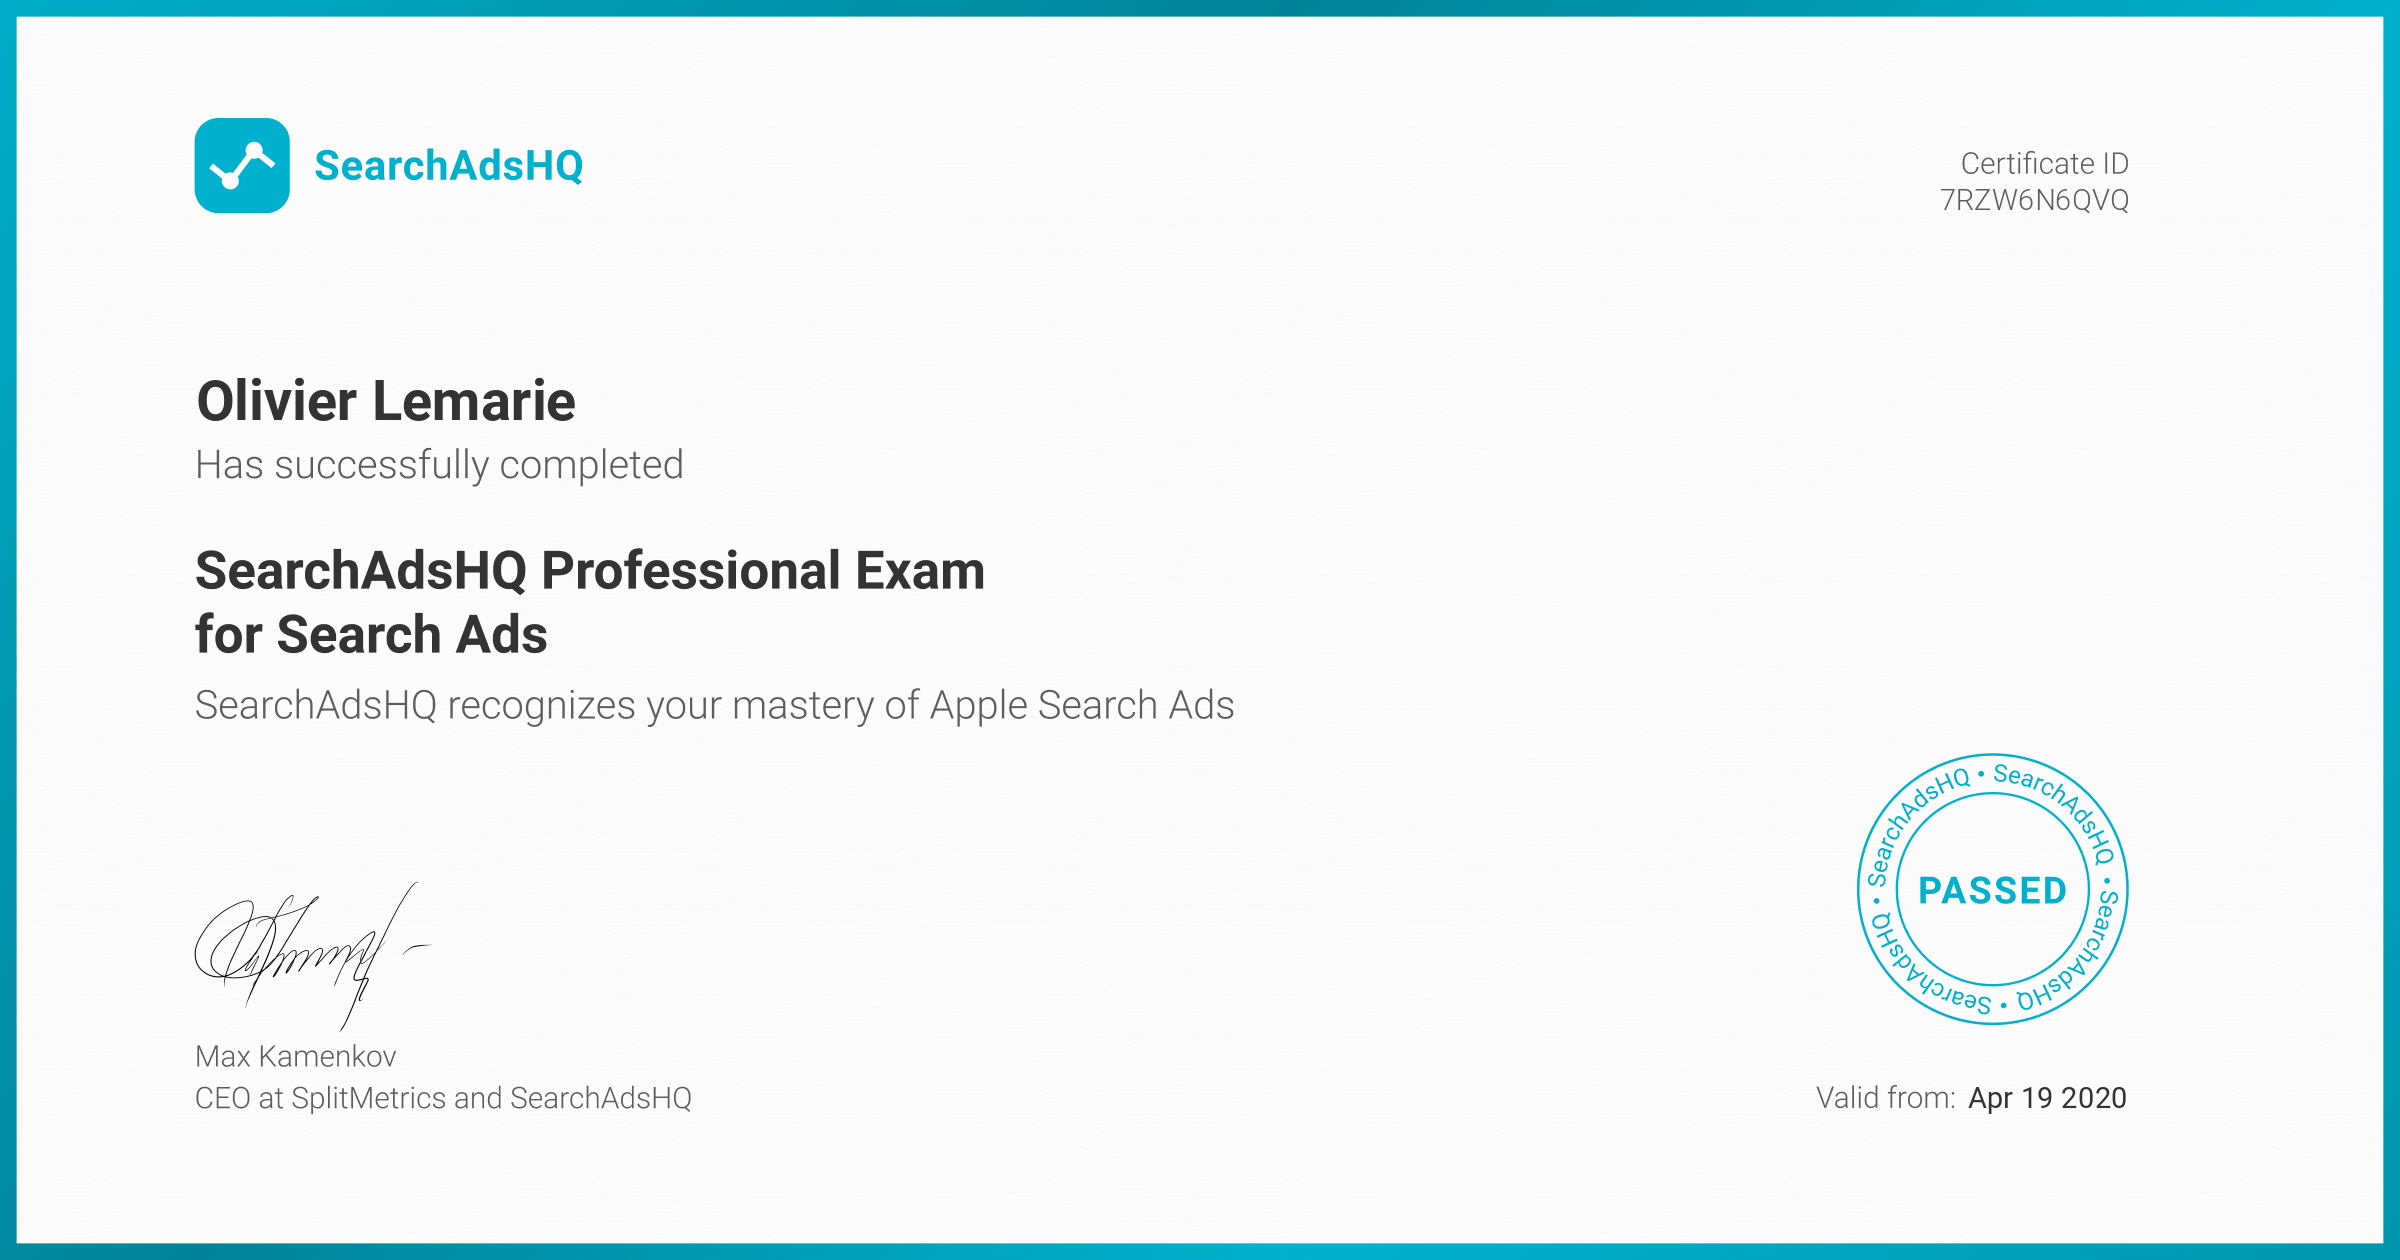 Certificate for Olivier Lemarie | SearchAdsHQ Professional Exam for Search Ads